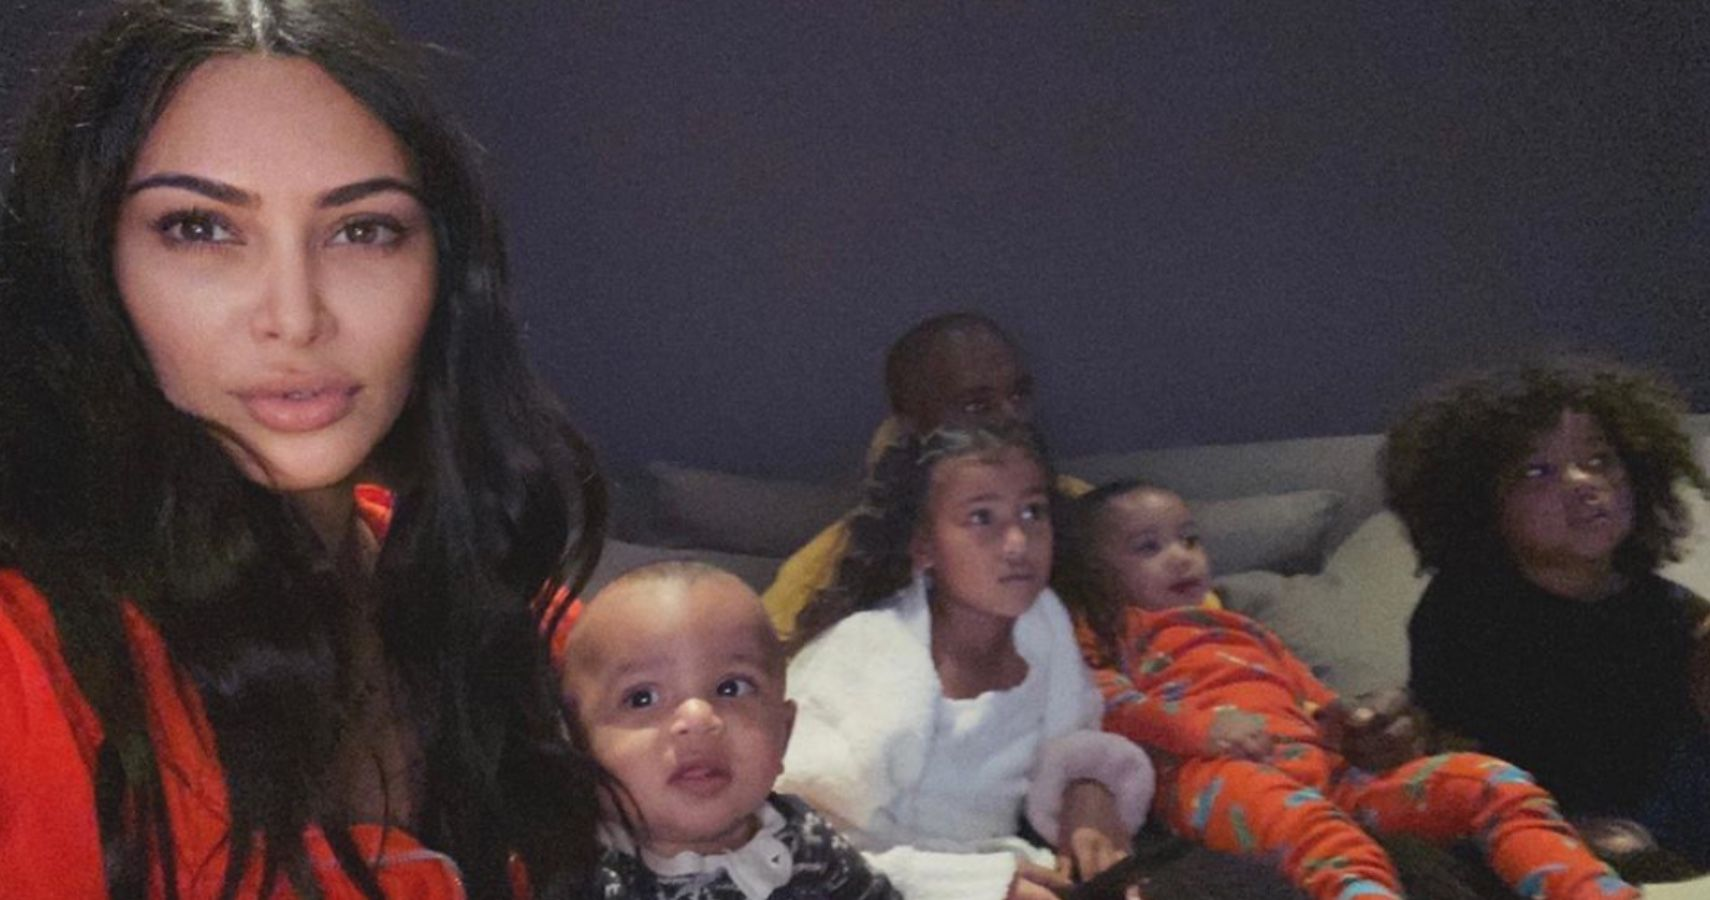 Kim and her kids